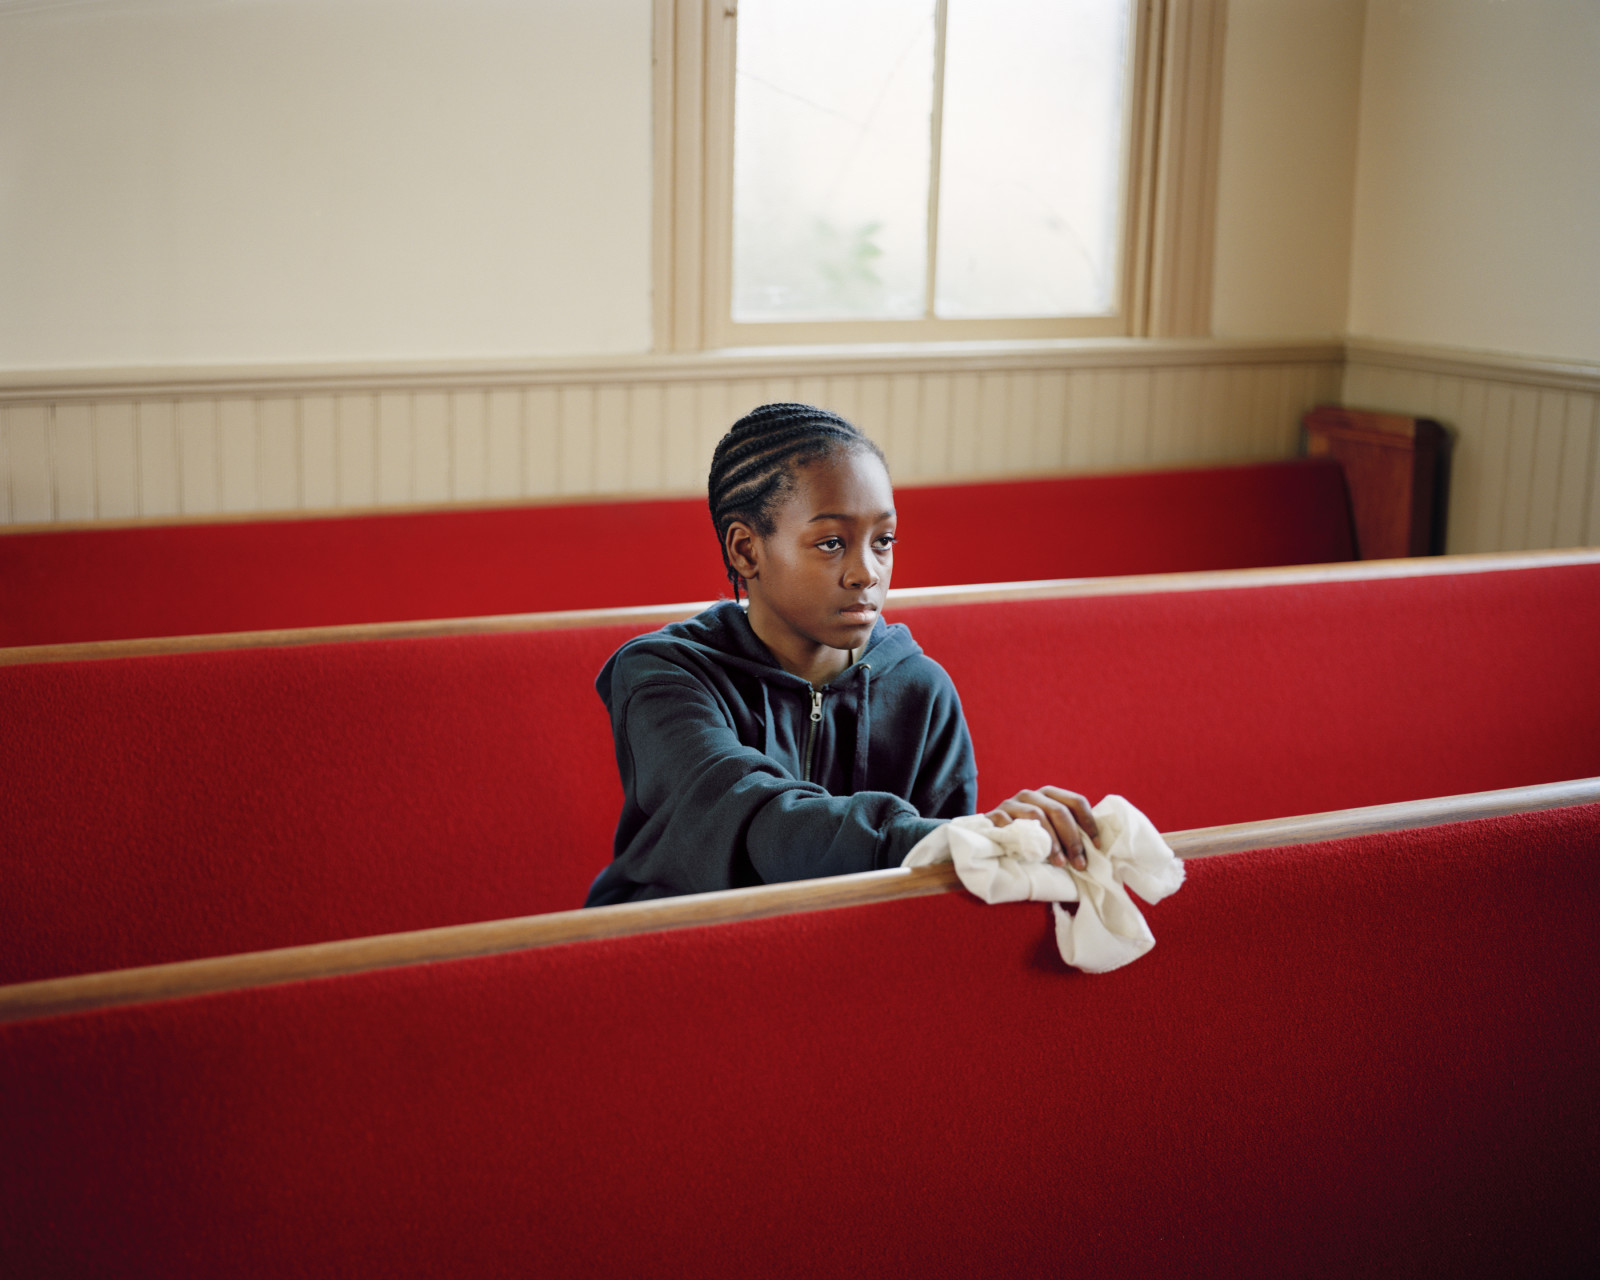 Young Boy Cleaning Church, VA, 2011